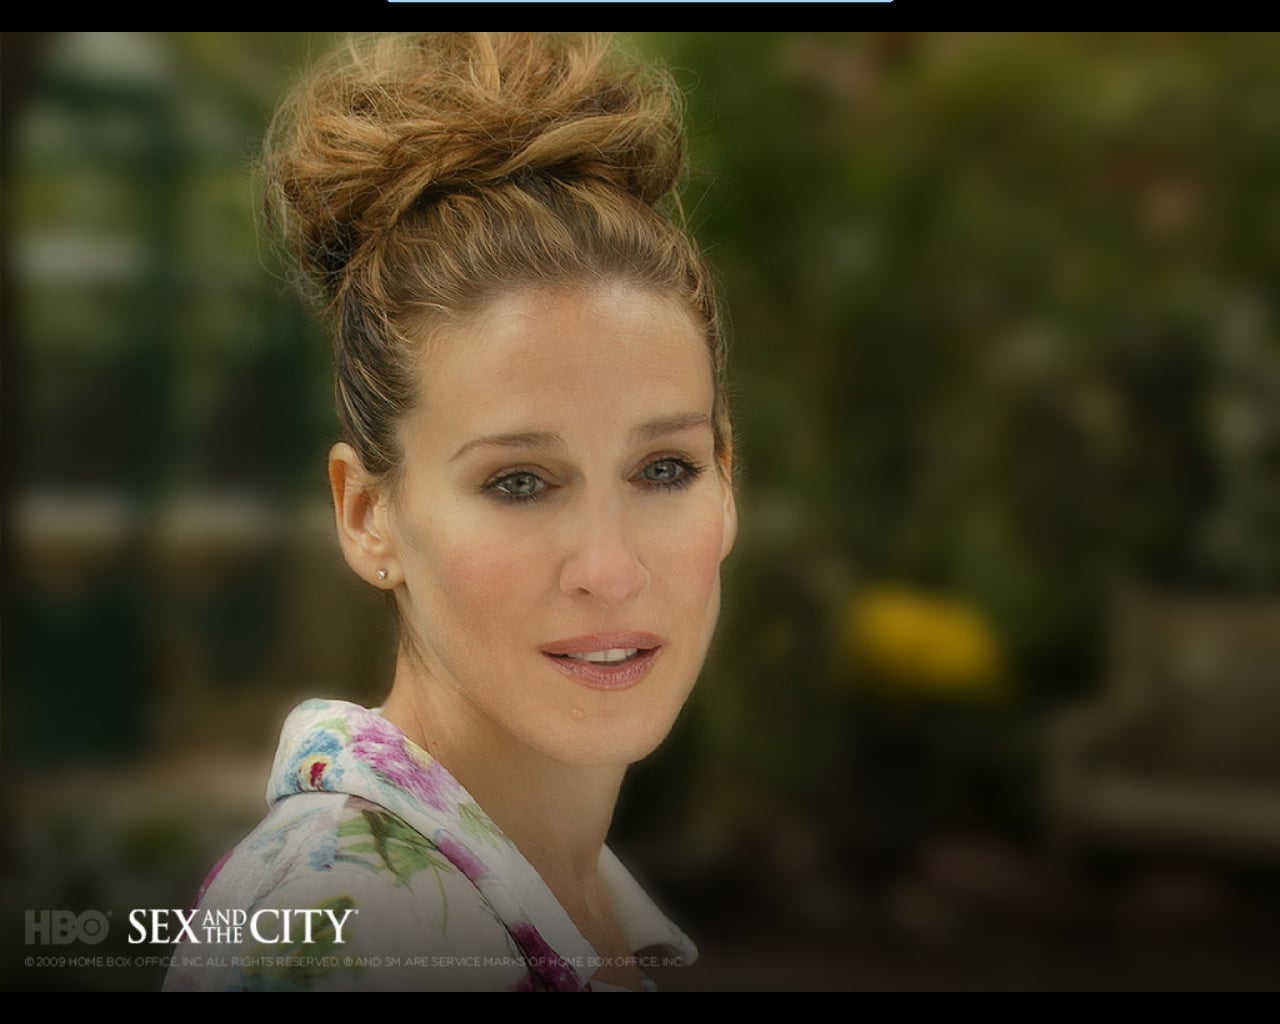 Download Sex and the City - free - latest version